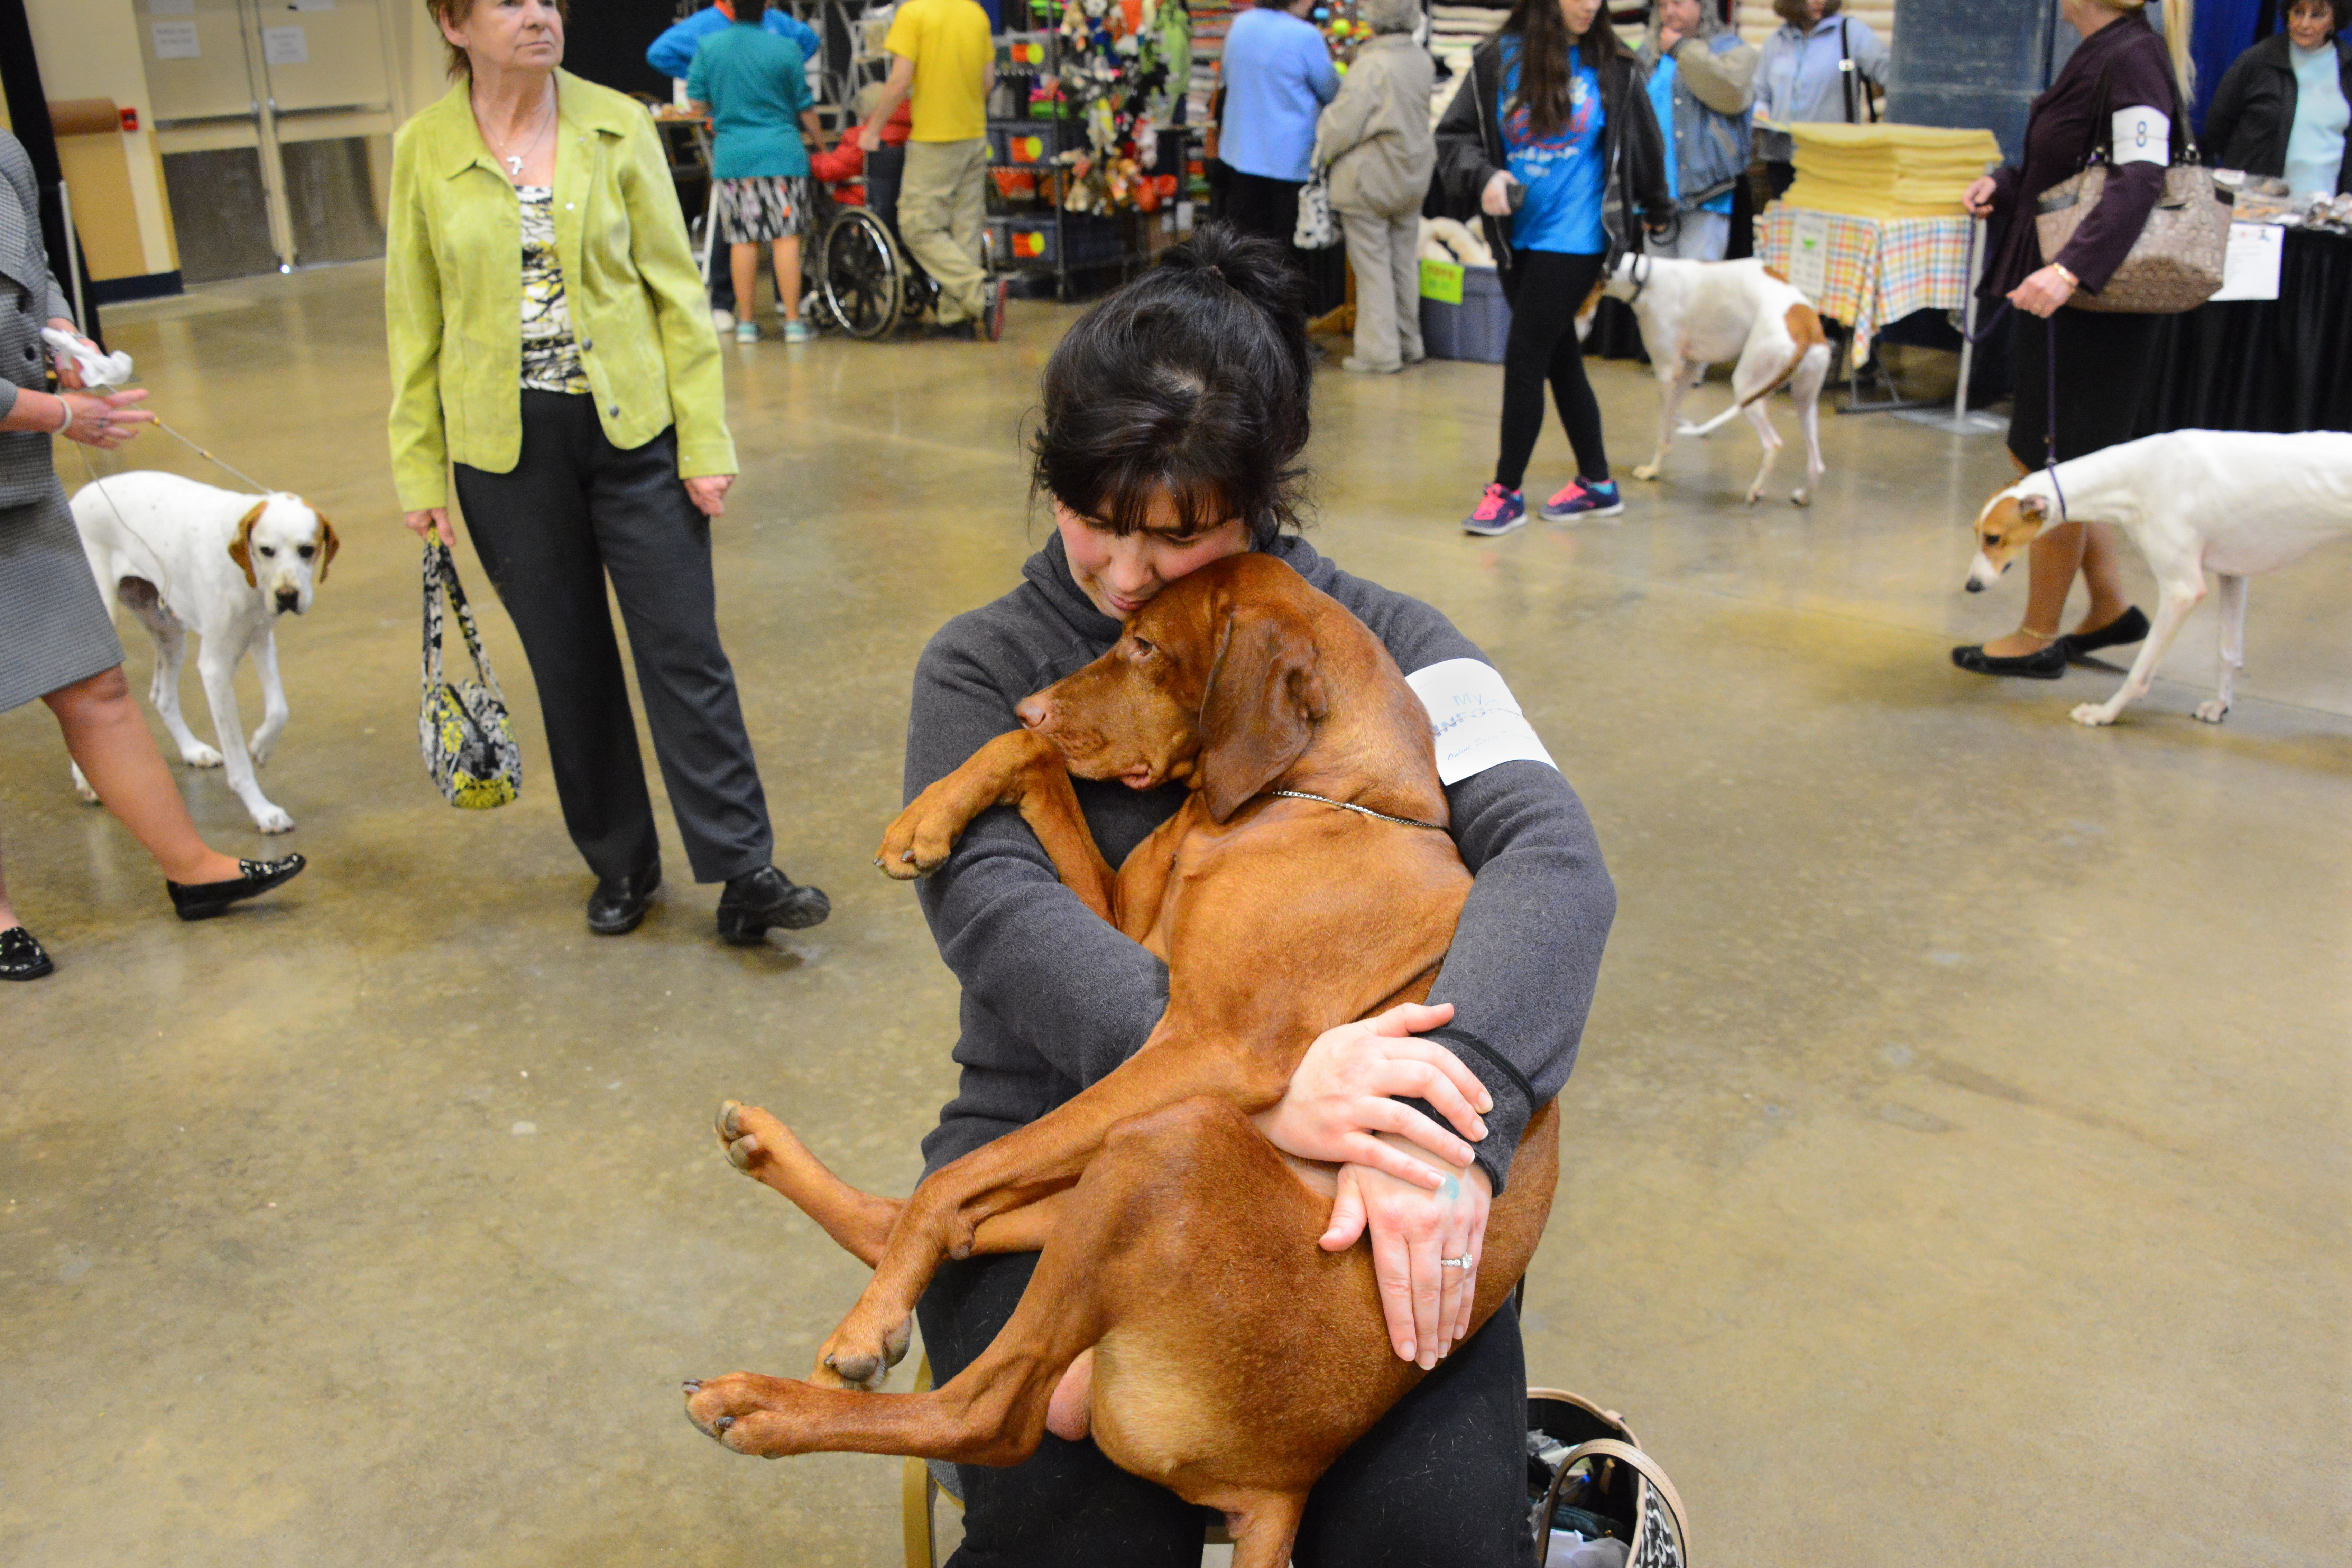 Rigby, a 4-year-old vizsla, rests on the lap of his owner, Kim Swendsen, after winning the Winner's dog and Best of Winners categories at the Western Pennsylvania Kennel Association dog show at Monroeville Convention Center last Saturday.